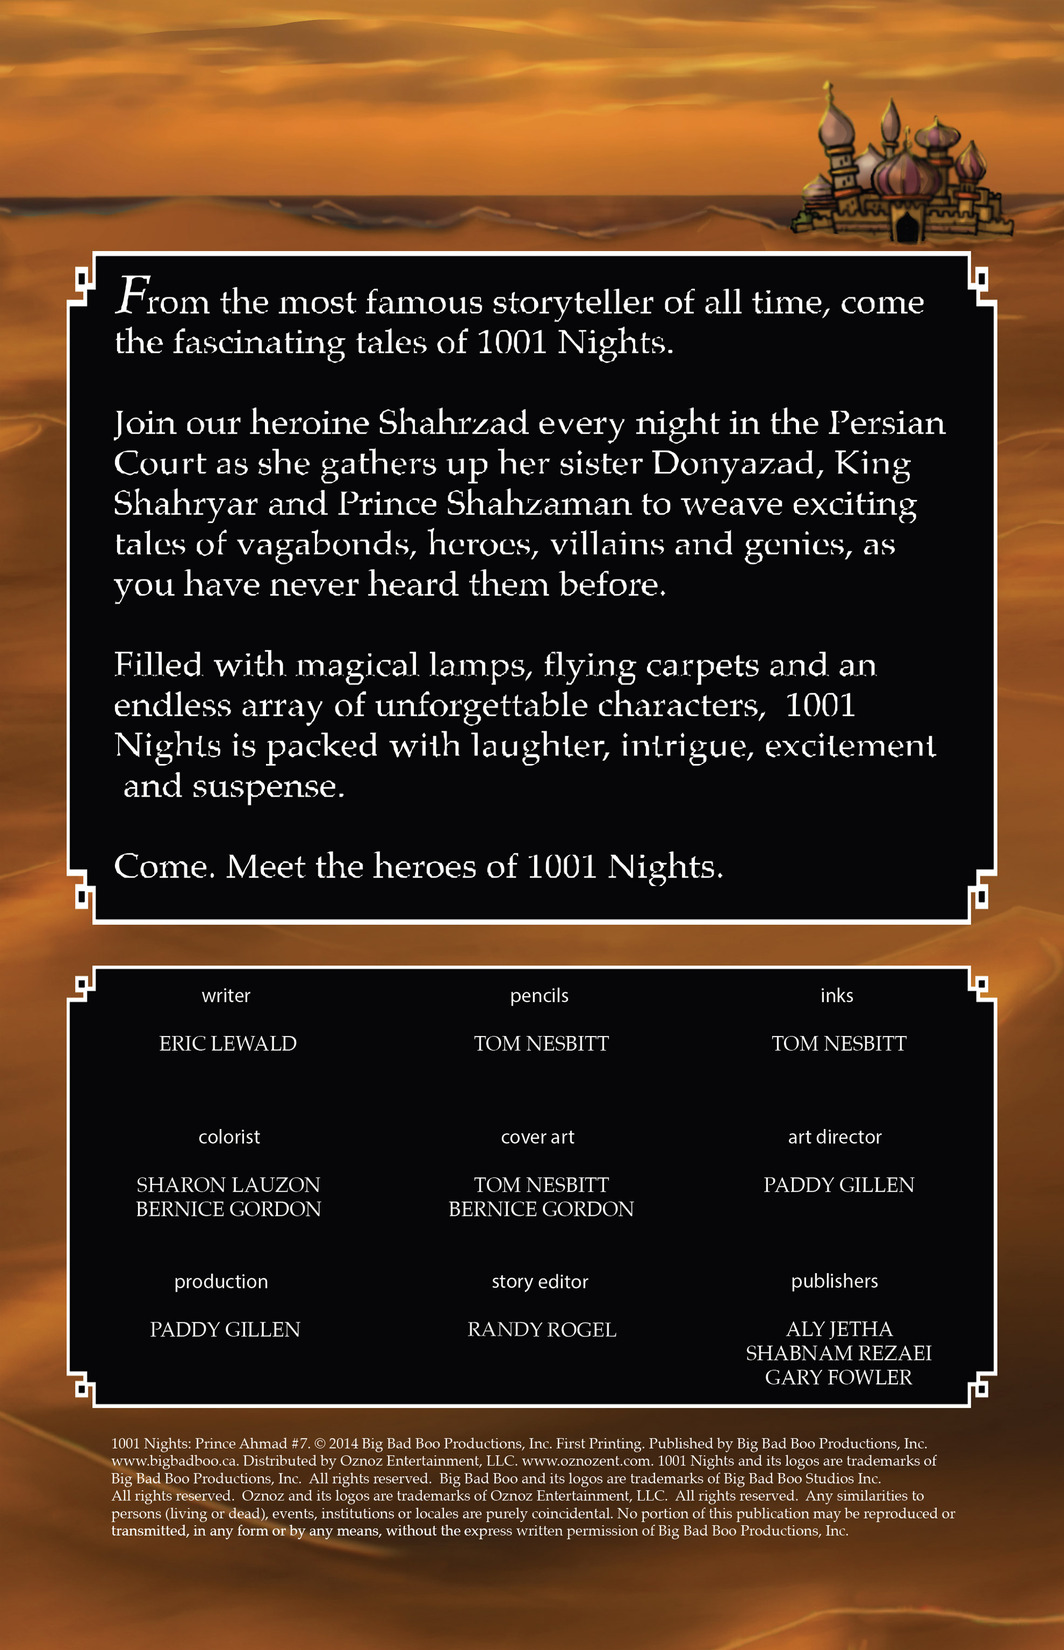 Read online 1001 Nights comic -  Issue #7 - 2